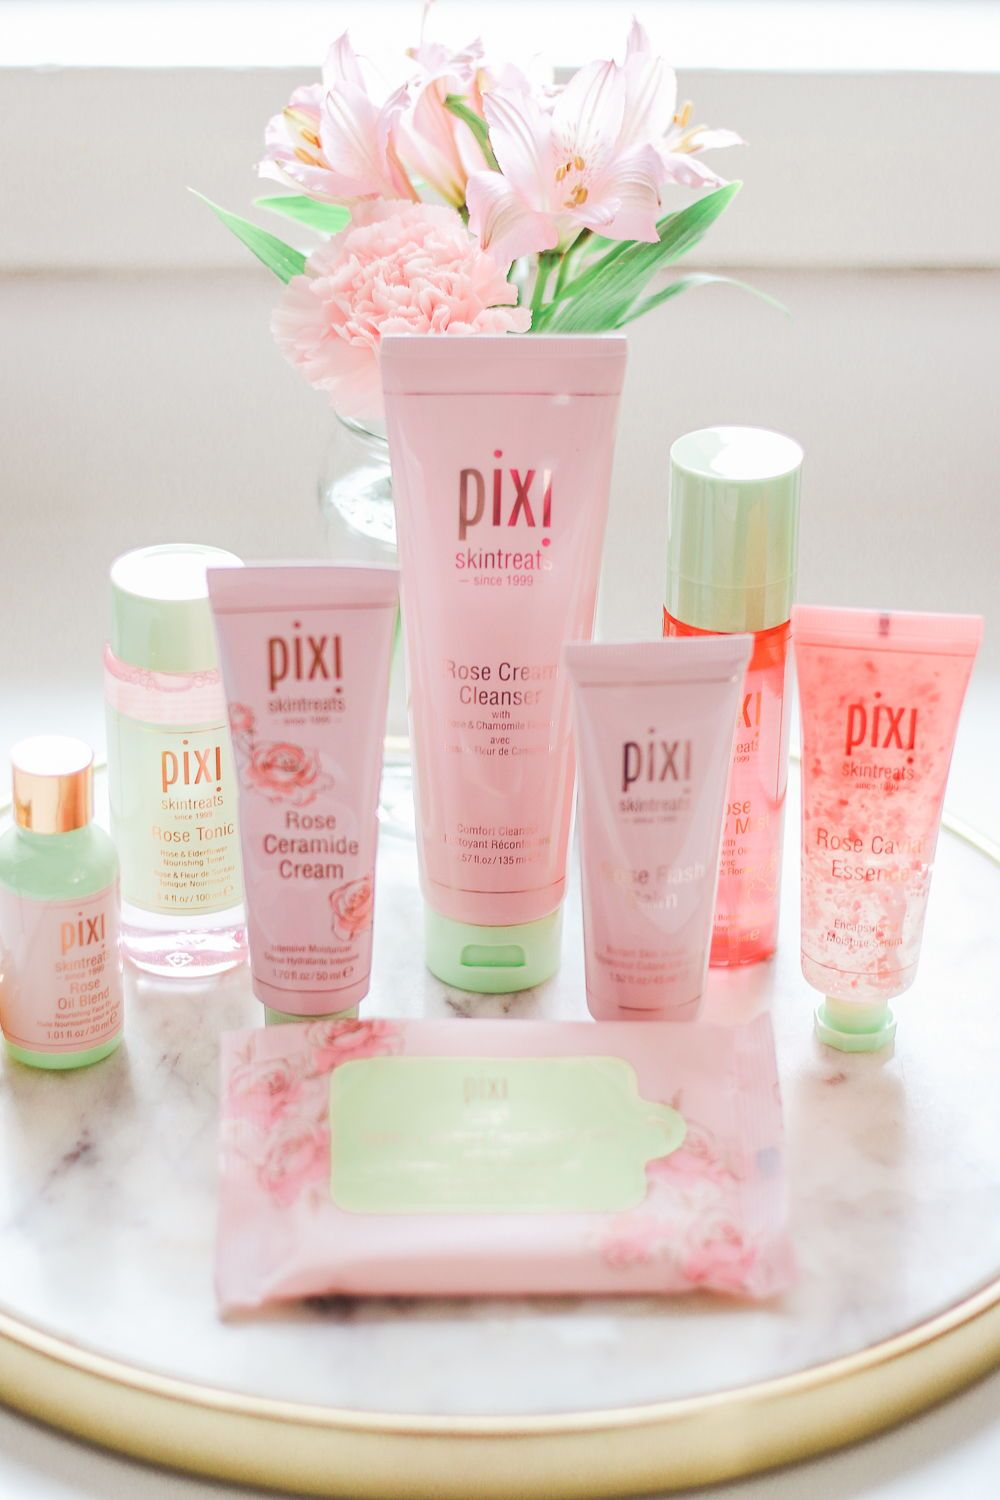 RoseInfused Skincare Picks Best Pixi Products for Dry